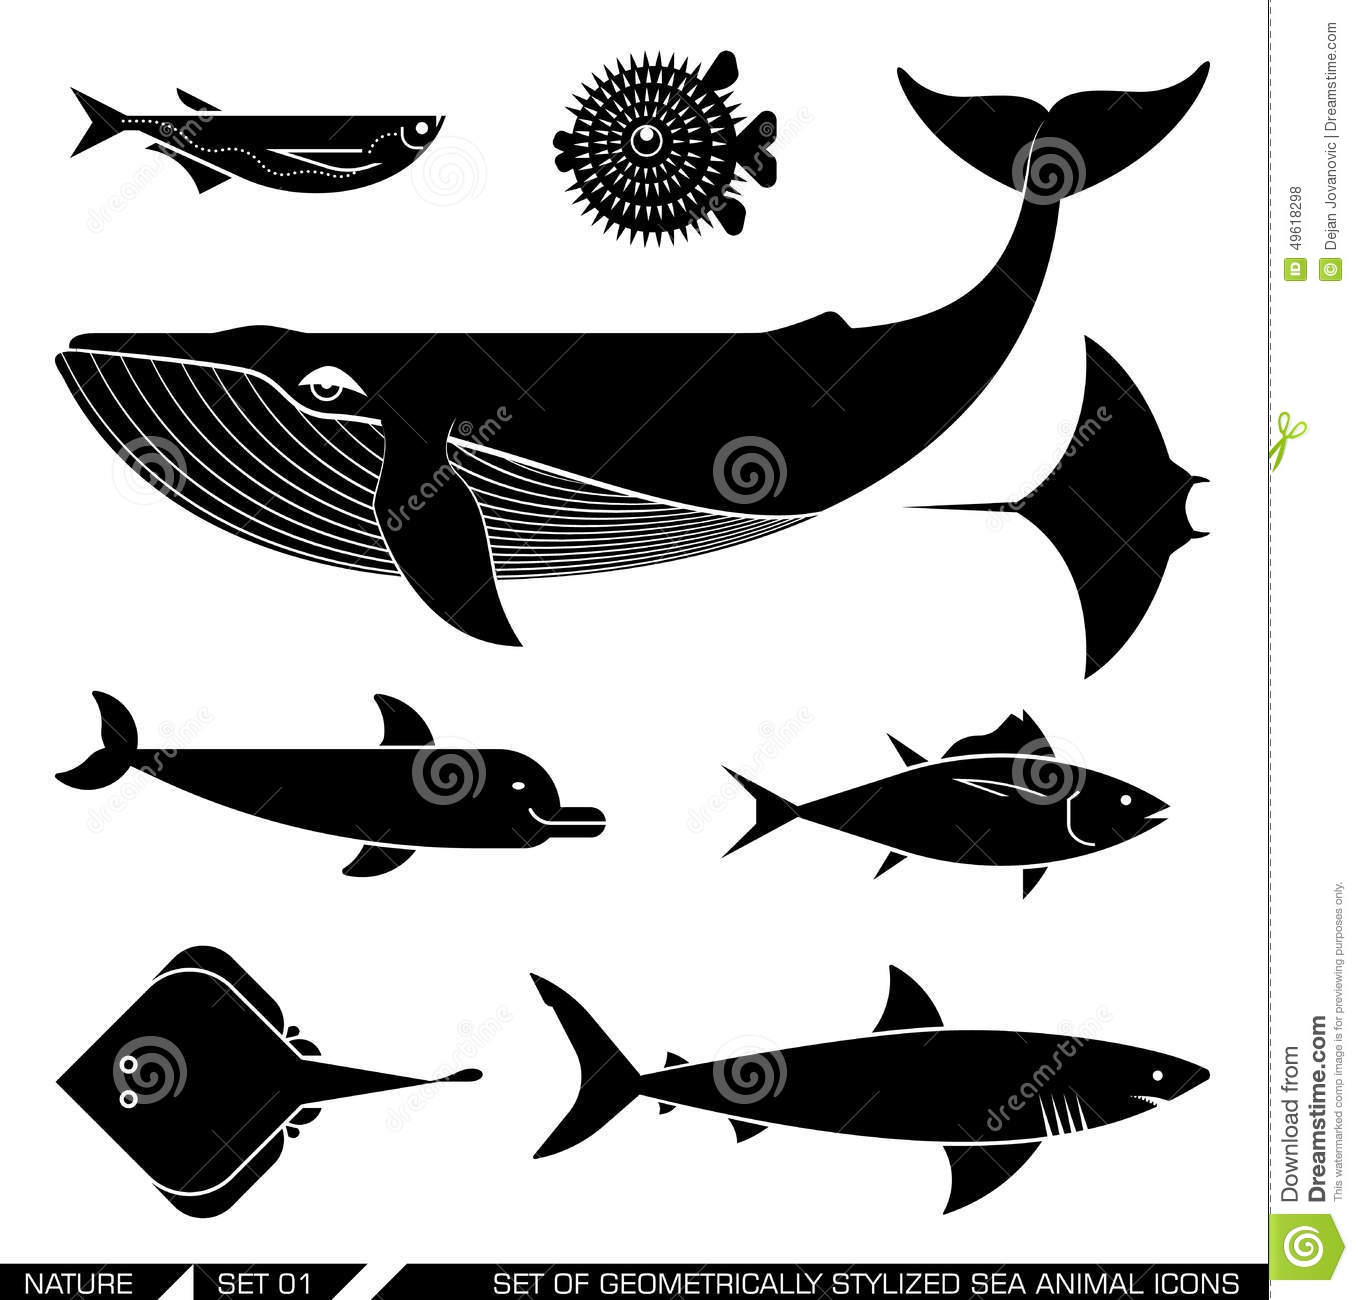 Set Of Geometrically Stylized Sea Animal Icons Stock Vector - Image ... Whale Shark Size